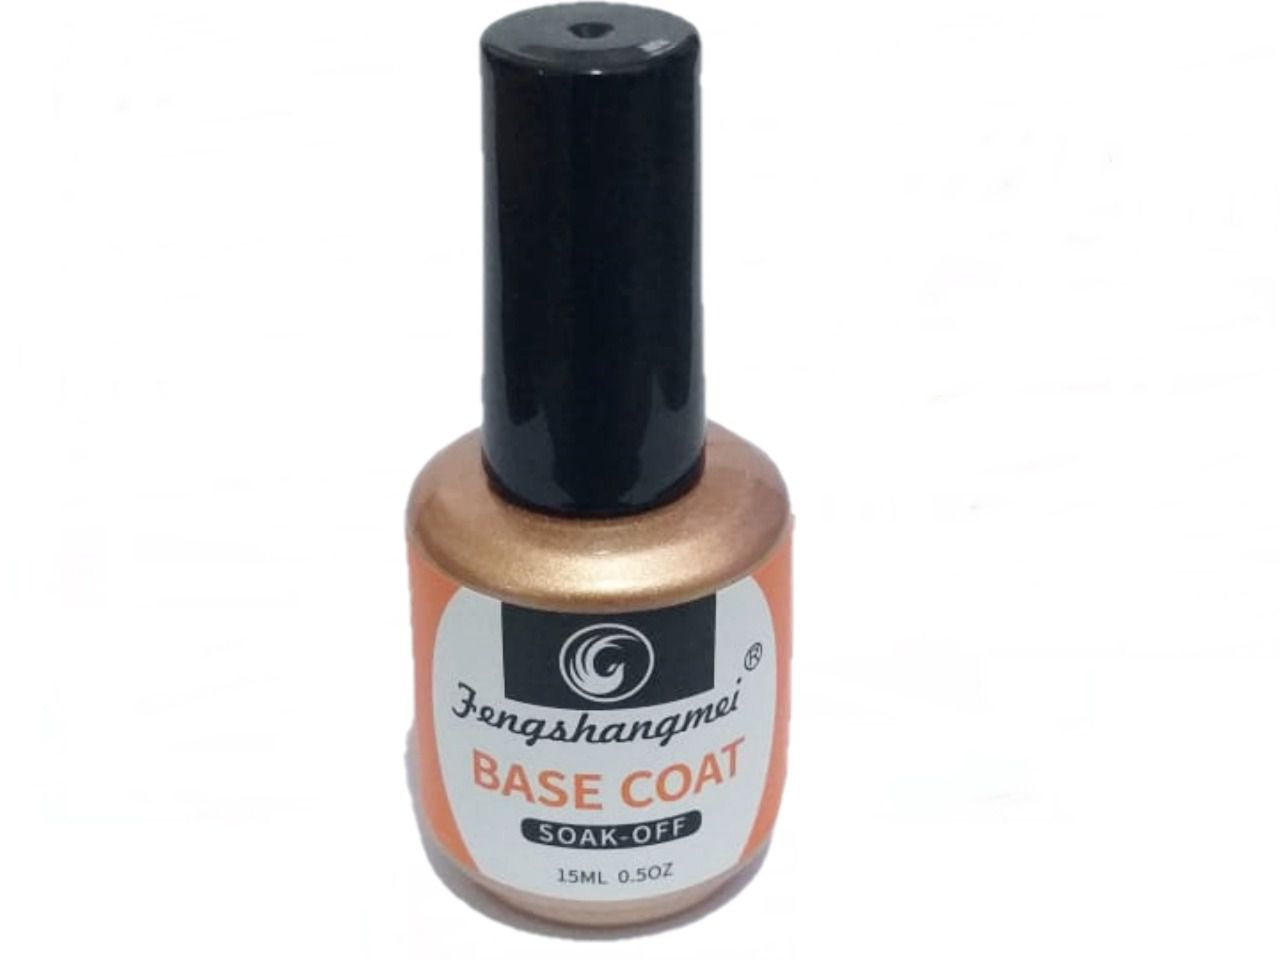 Base Coat Soak- Off Fengshangmei 15ml